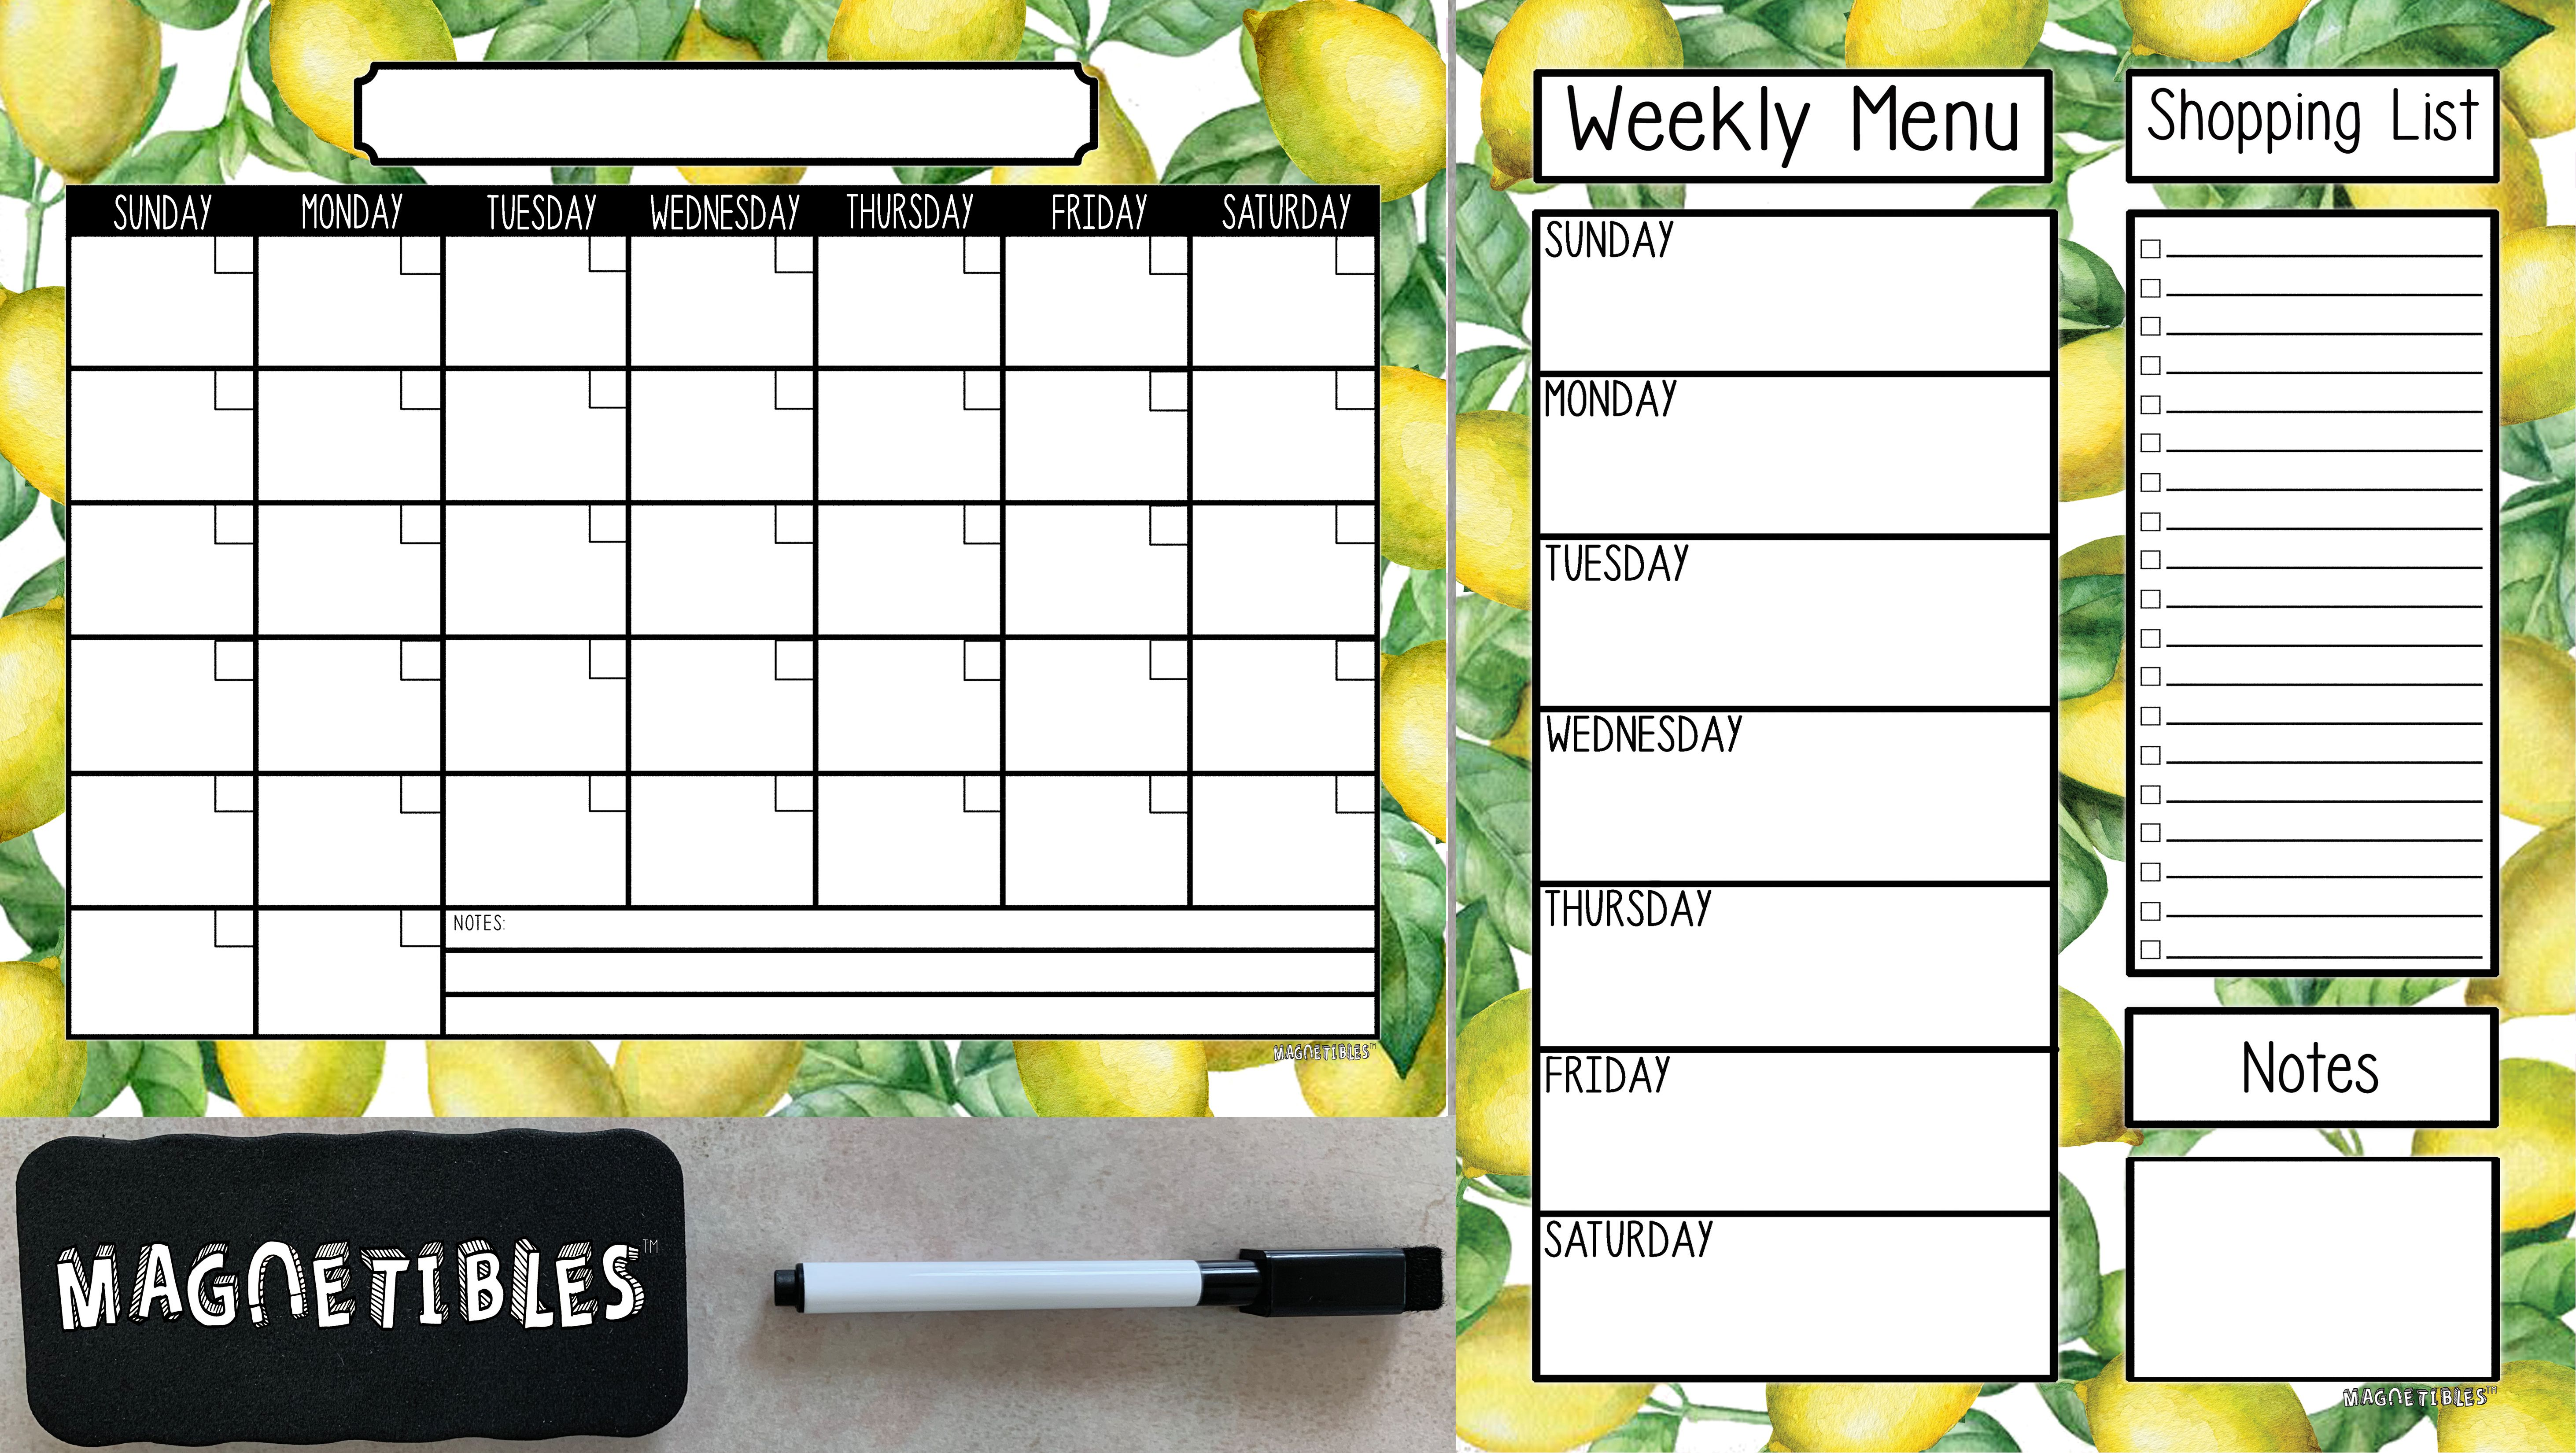 Finally Designer Magnetic Calendars And Menu Planners That Will